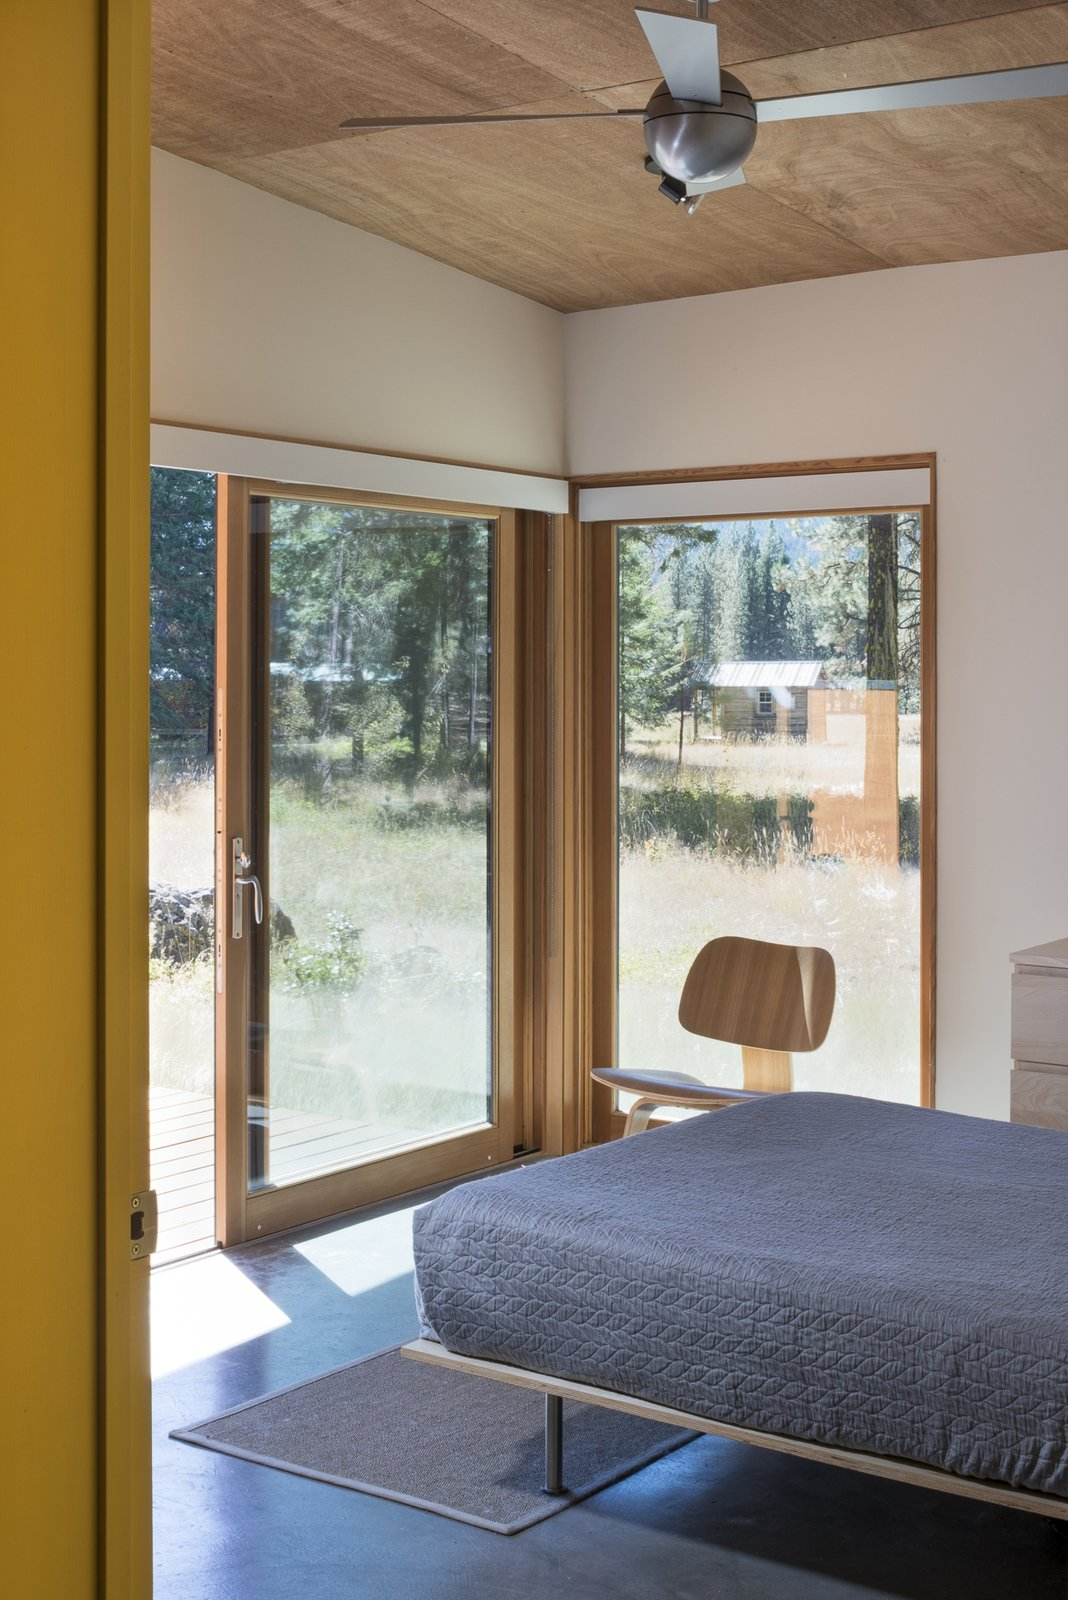 Bedroom, Chair, Rug Floor, Bed, and Concrete Floor The bedroom opens out onto the deck and meadow beyond.  Lot 6 by Prentiss + Balance + Wickline Architects